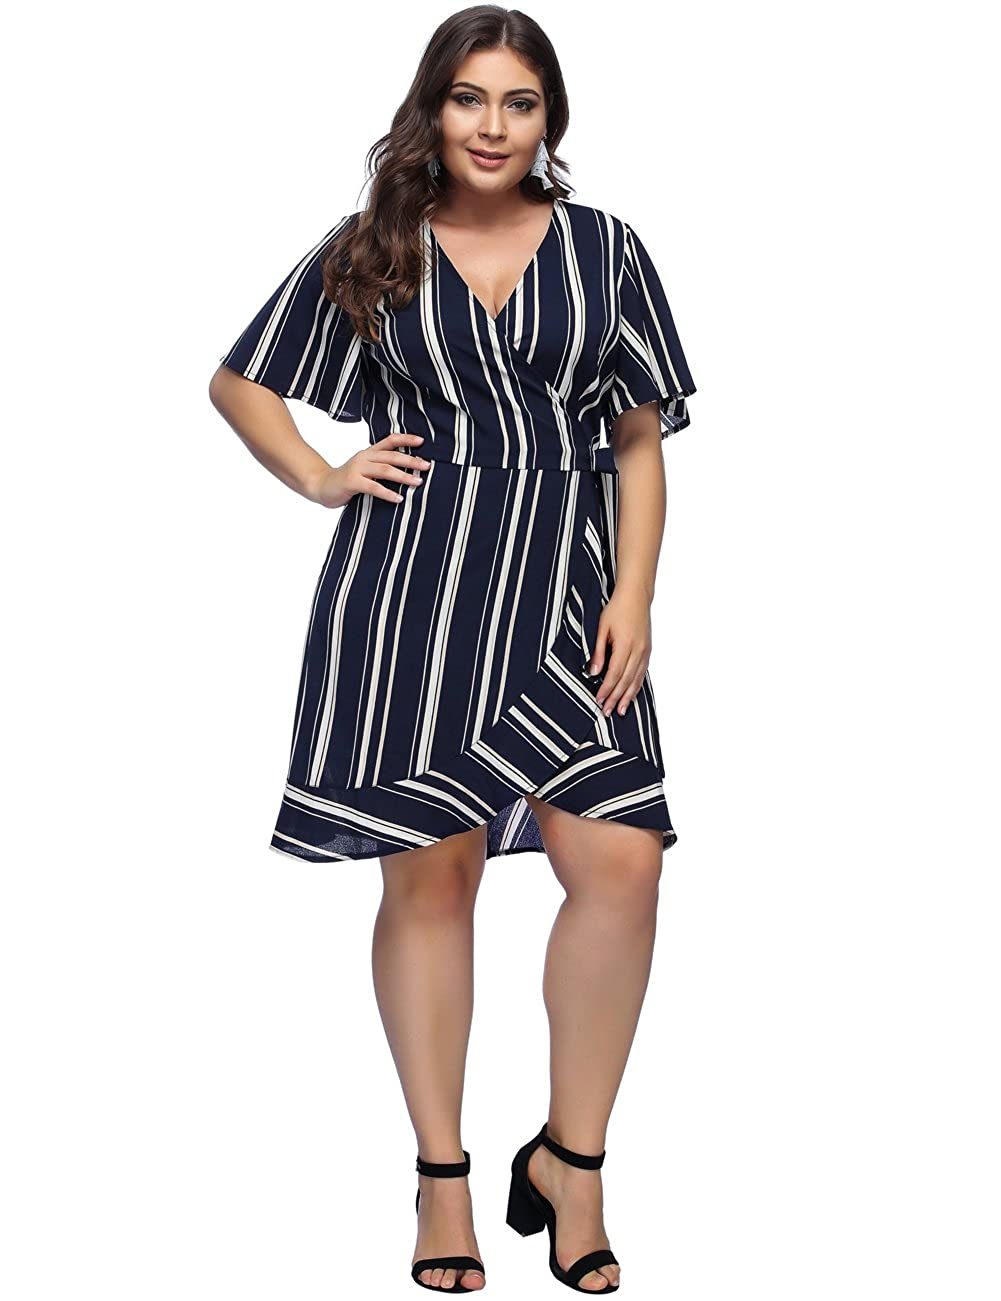 9edee7a1f6 Top 10 wholesale Plus Size Polka Dot Wedding Dress - Chinabrands.com